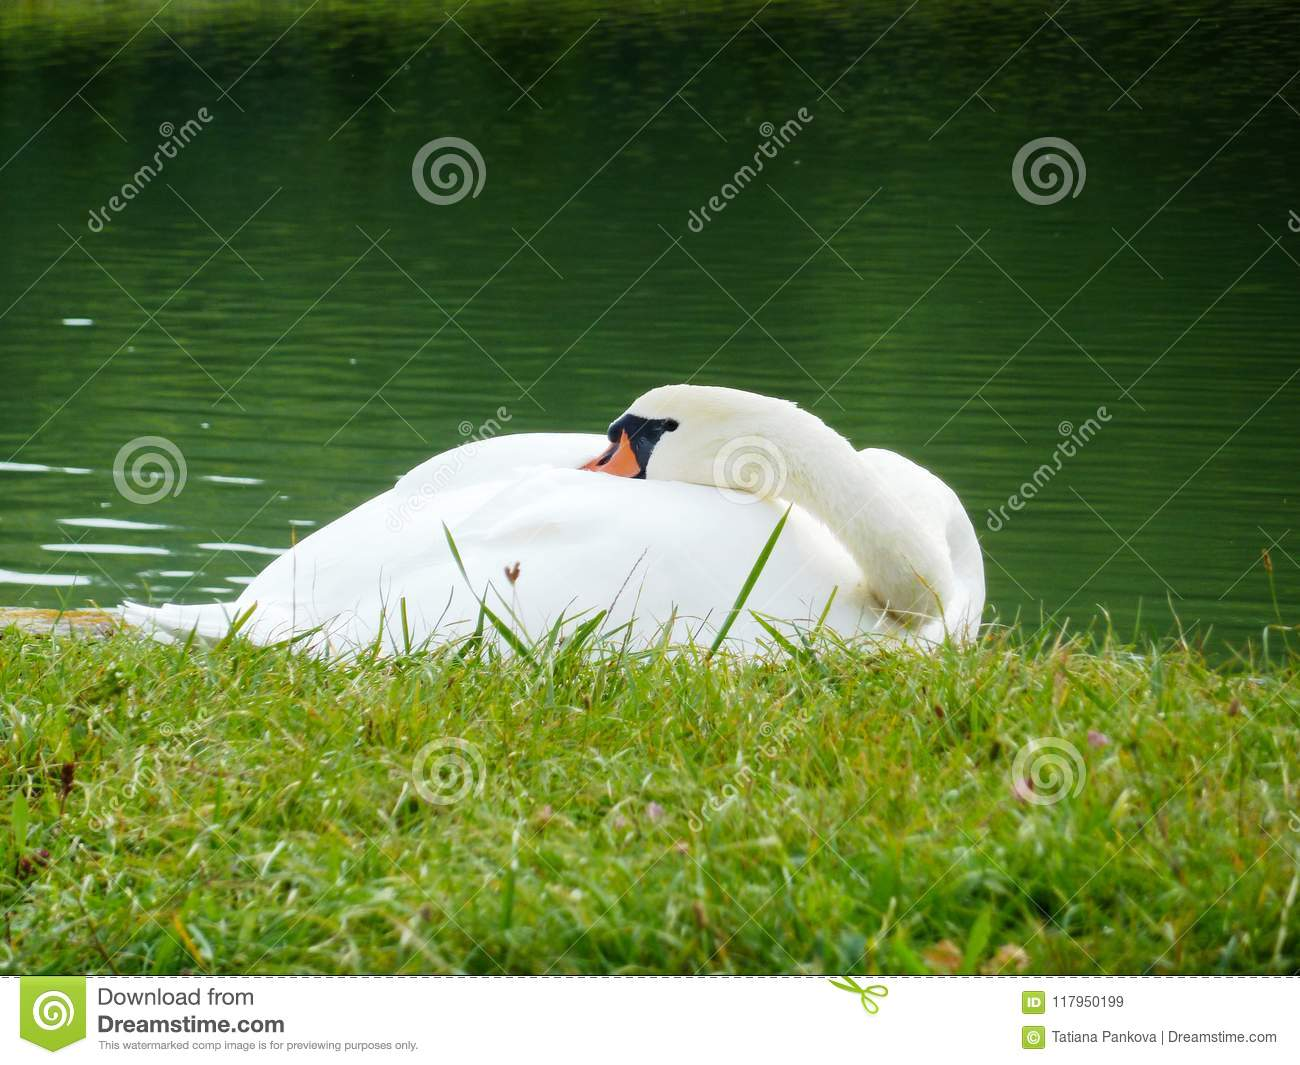 The Sleeping Swans >> The Sleeping White Swan On The Bank Of The Lake Stock Image Image